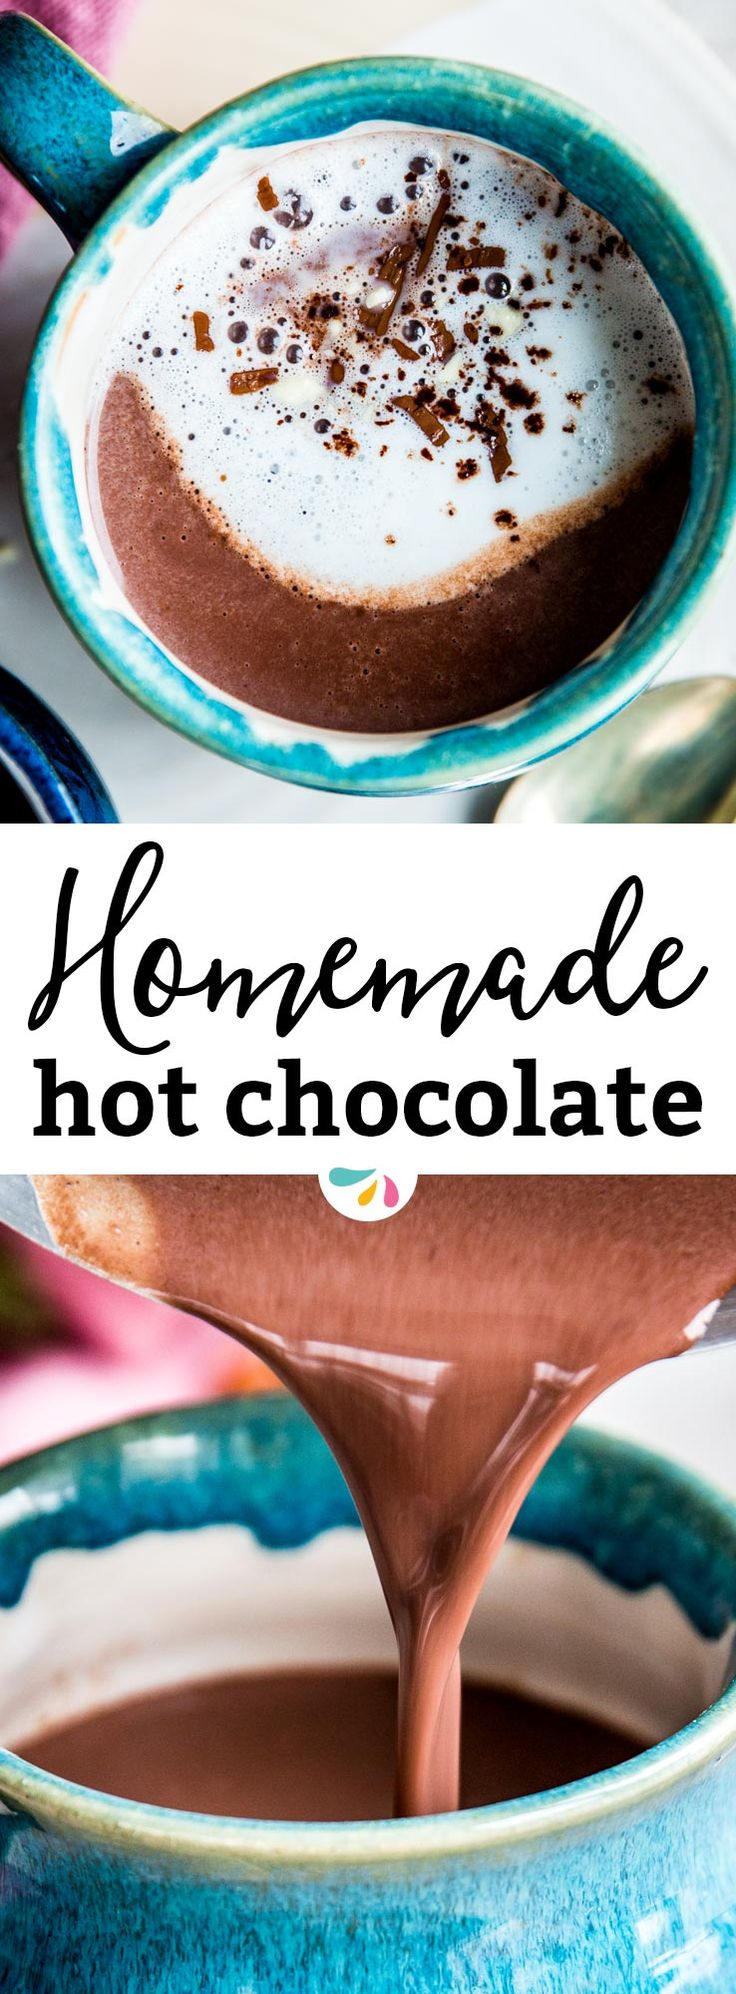 Homemade hot chocolate is a delicious and decadent drink.